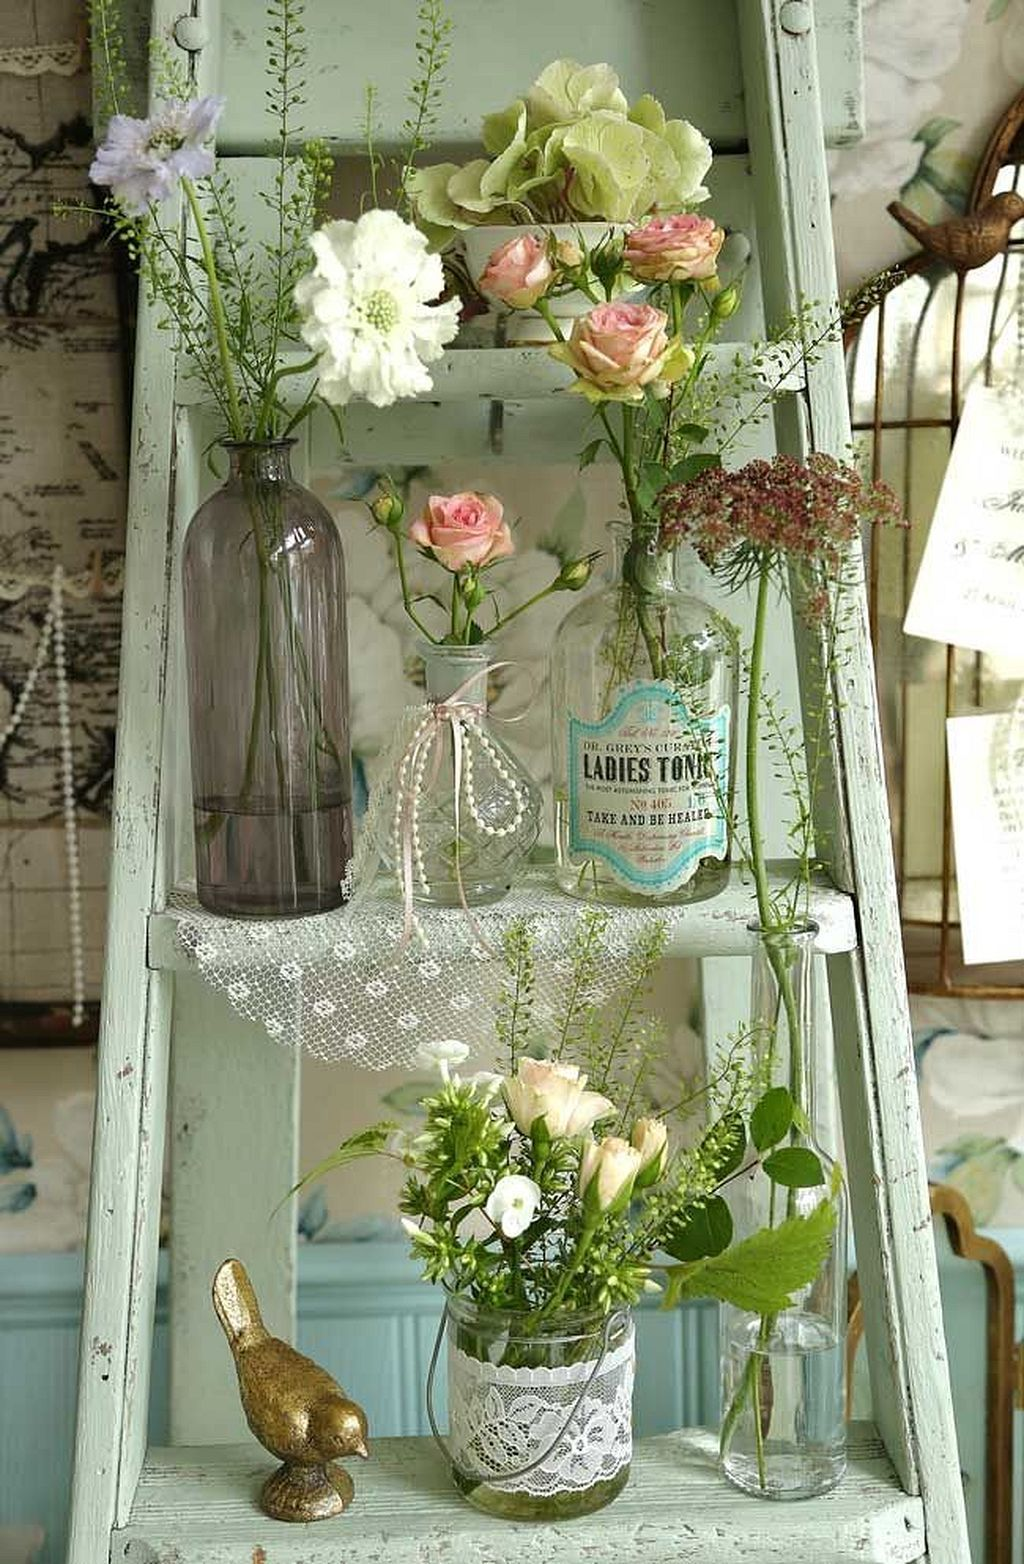 Gorgeous 80+ Shabby Chic Home Decor Ideas //architecturemagz.com/80-shabby-chic-home-decor-ideas/ & 80+ Shabby Chic Home Decor Ideas | Shabby Chic wedding and Shabby ...